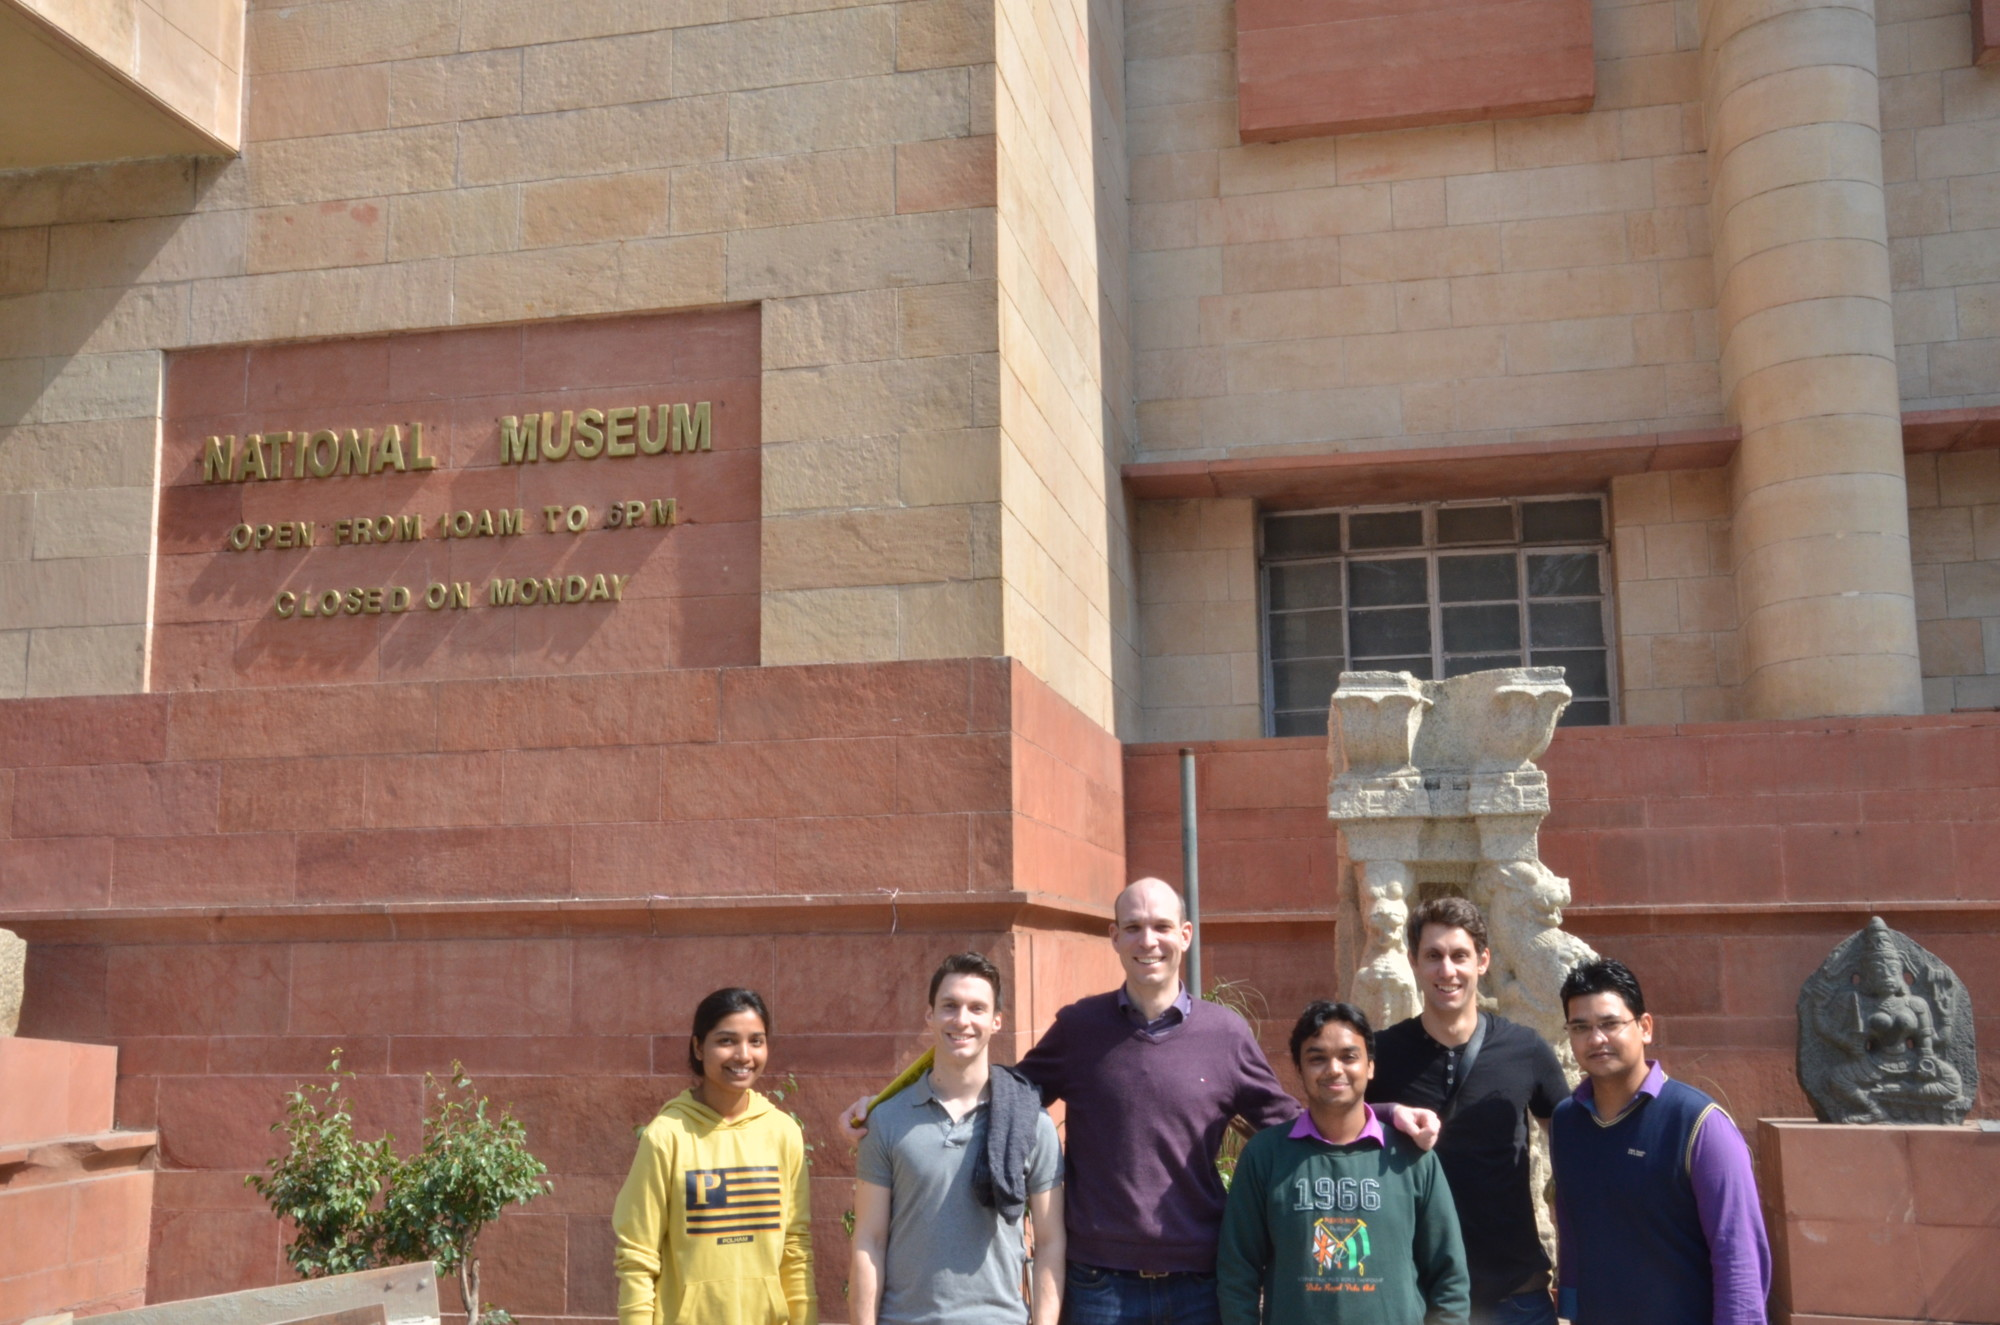 Group photo of six researchers from the technical faculties at Friedrich-Alexander-Universität Erlangen-Nürnberg and the Indian Institute of Technology Delhi visiting the National Museum in Delhi.